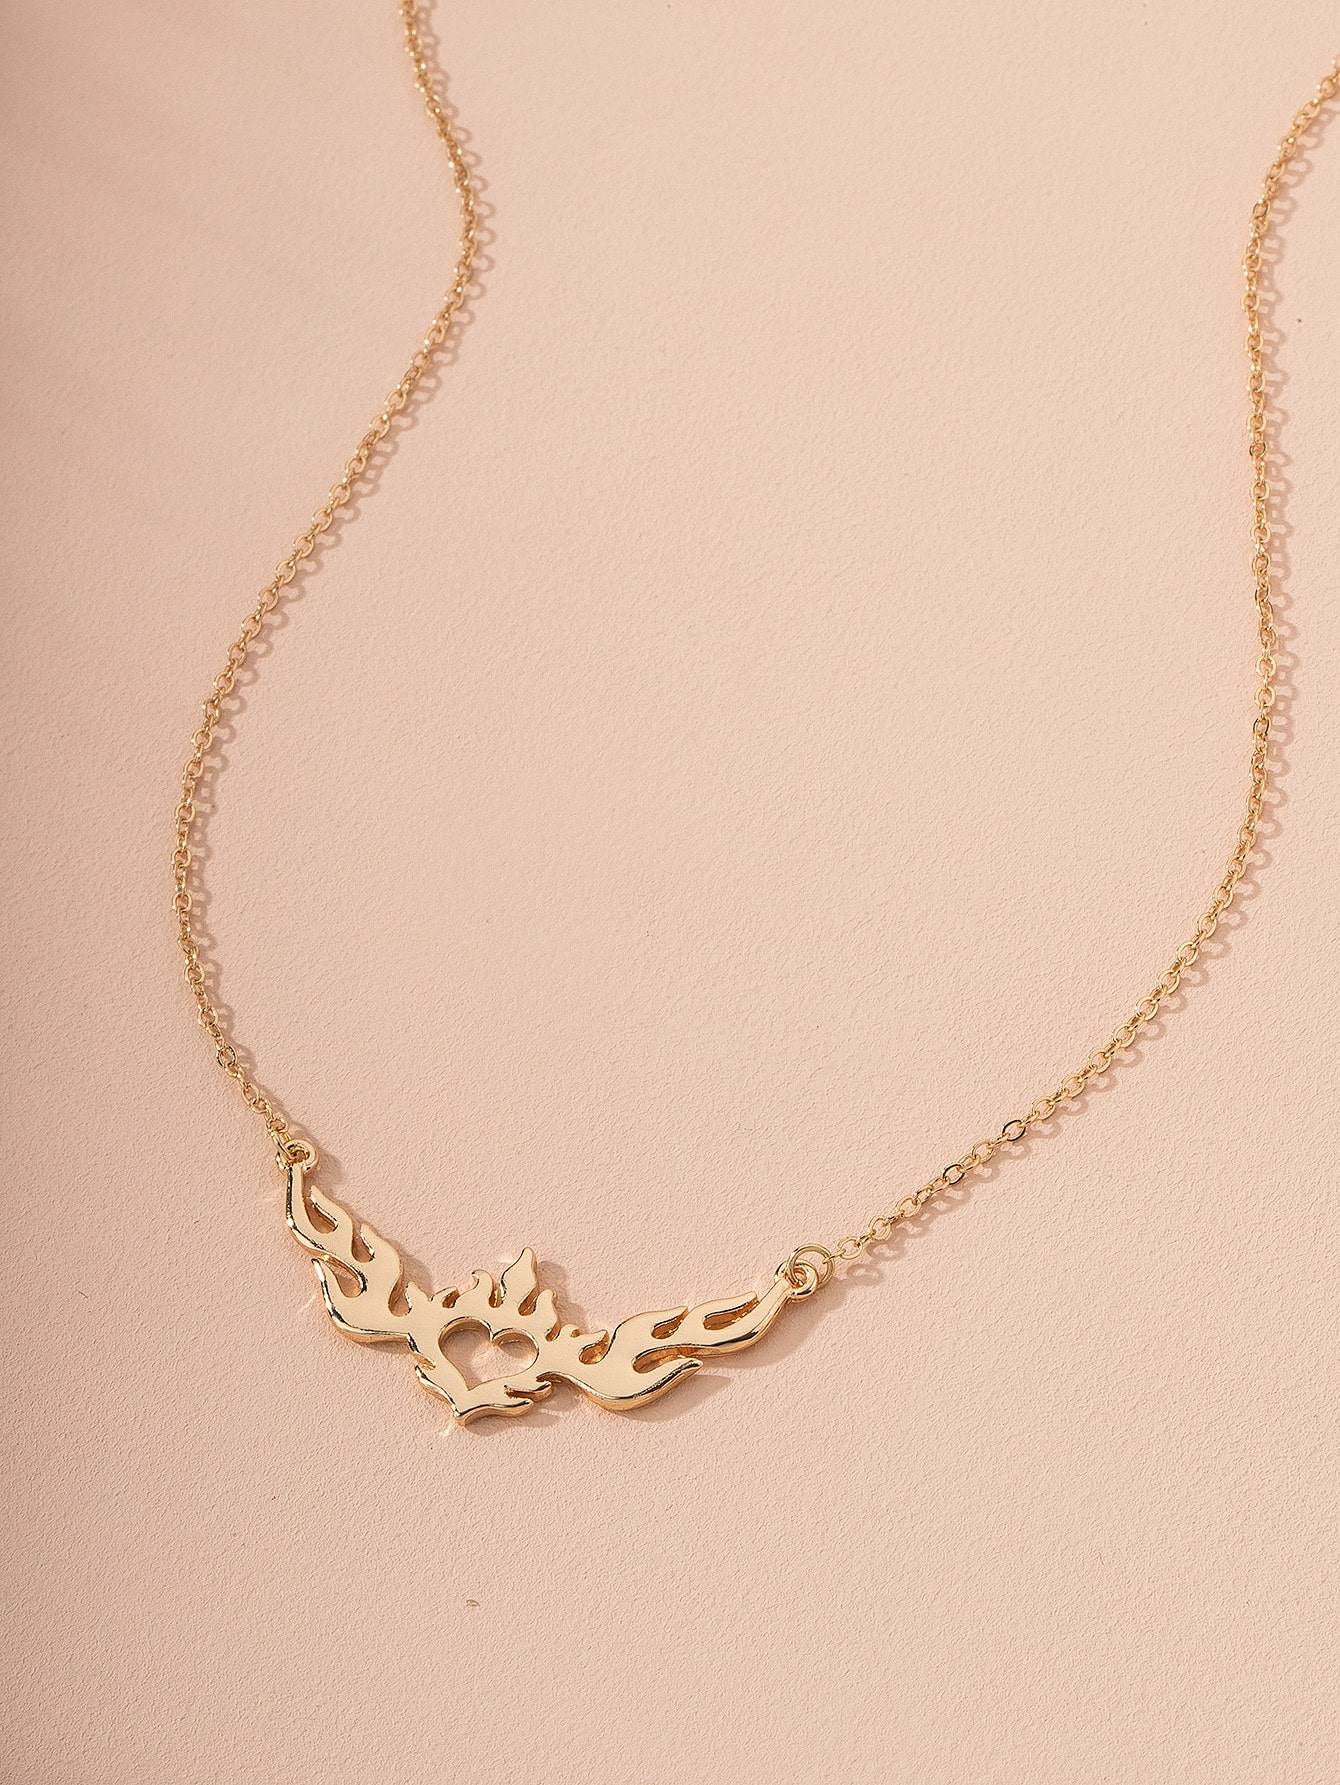 Flame Heart Design Charm Necklace thumbnail